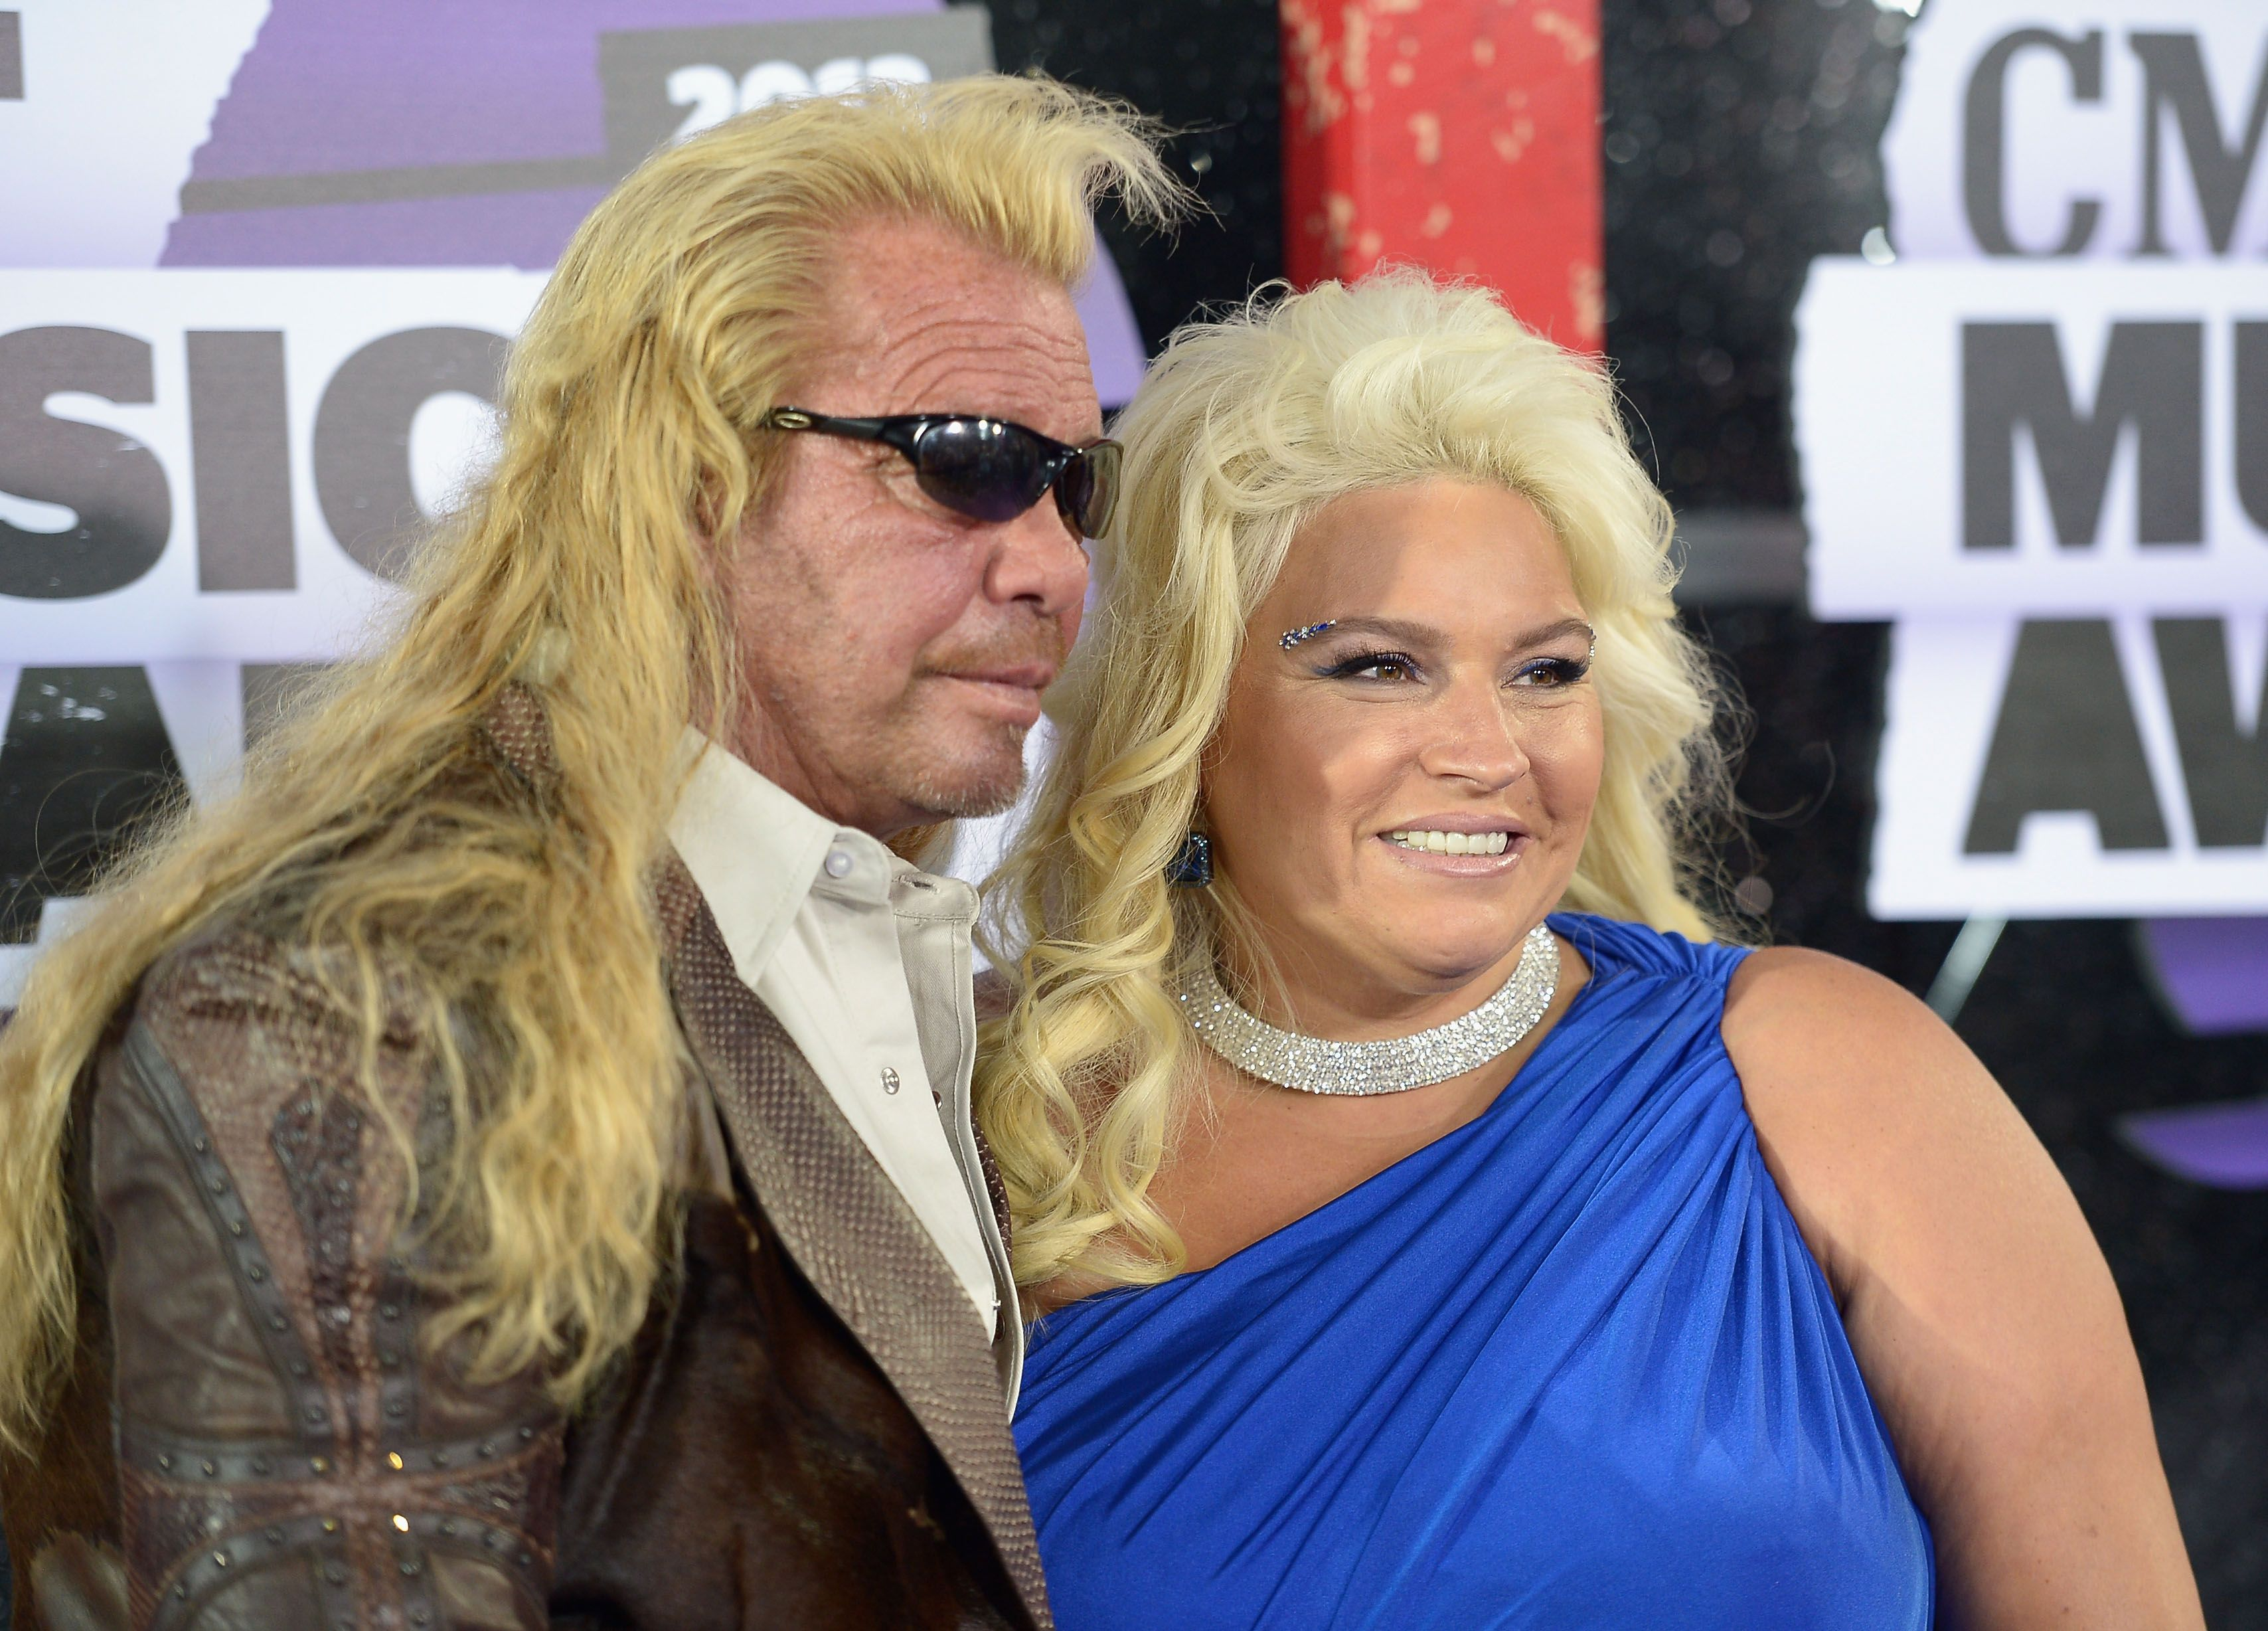 'Dog the Bounty Hunter' Star Beth Chapman Is Reportedly In A Medically-Induced Coma